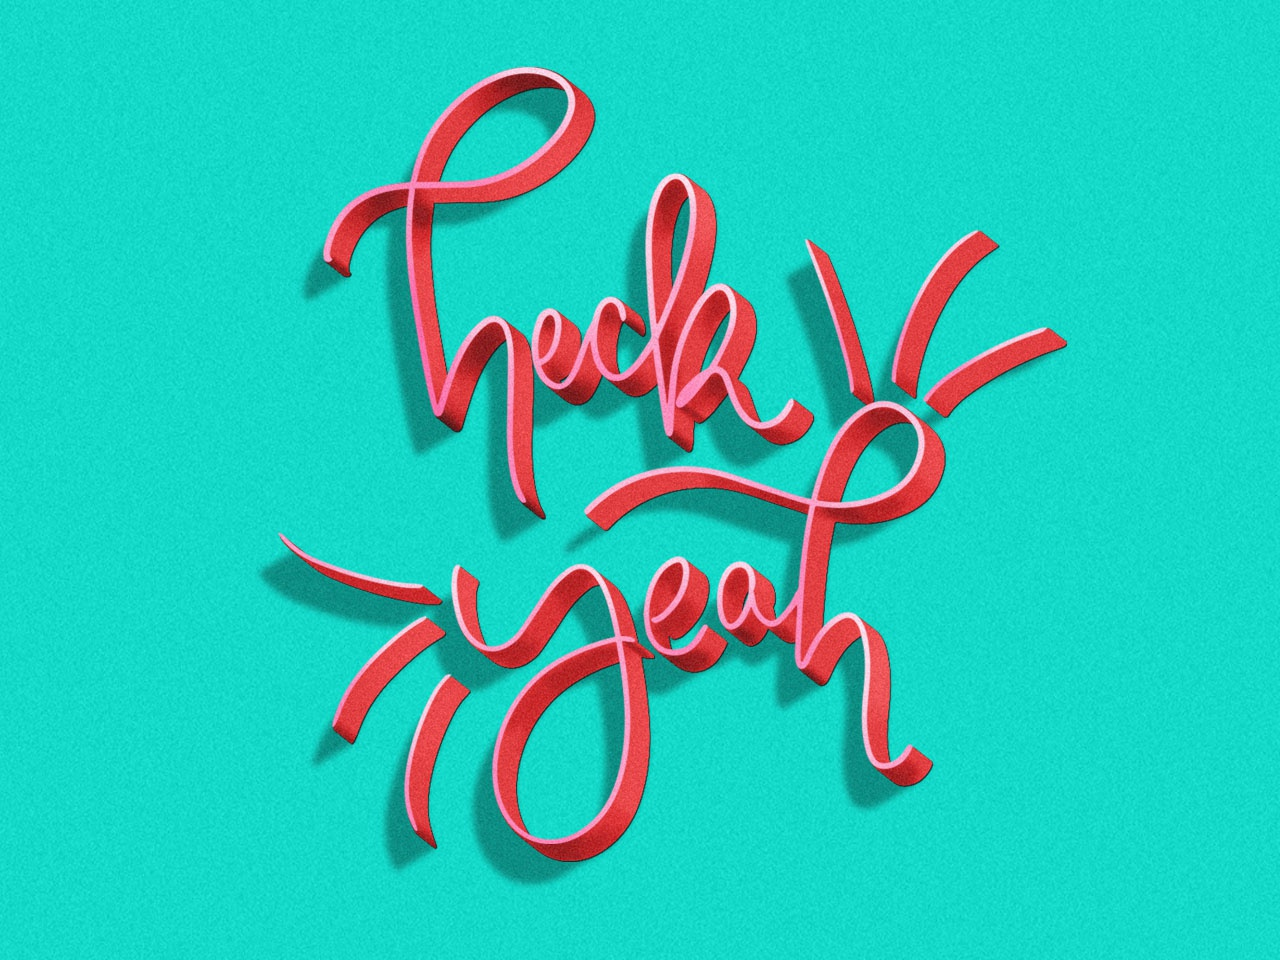 Heck yeah bright texture photoshop graphic design type design type exclamation heck yeah illustration design typogaphy lettering hand lettering art hand lettering